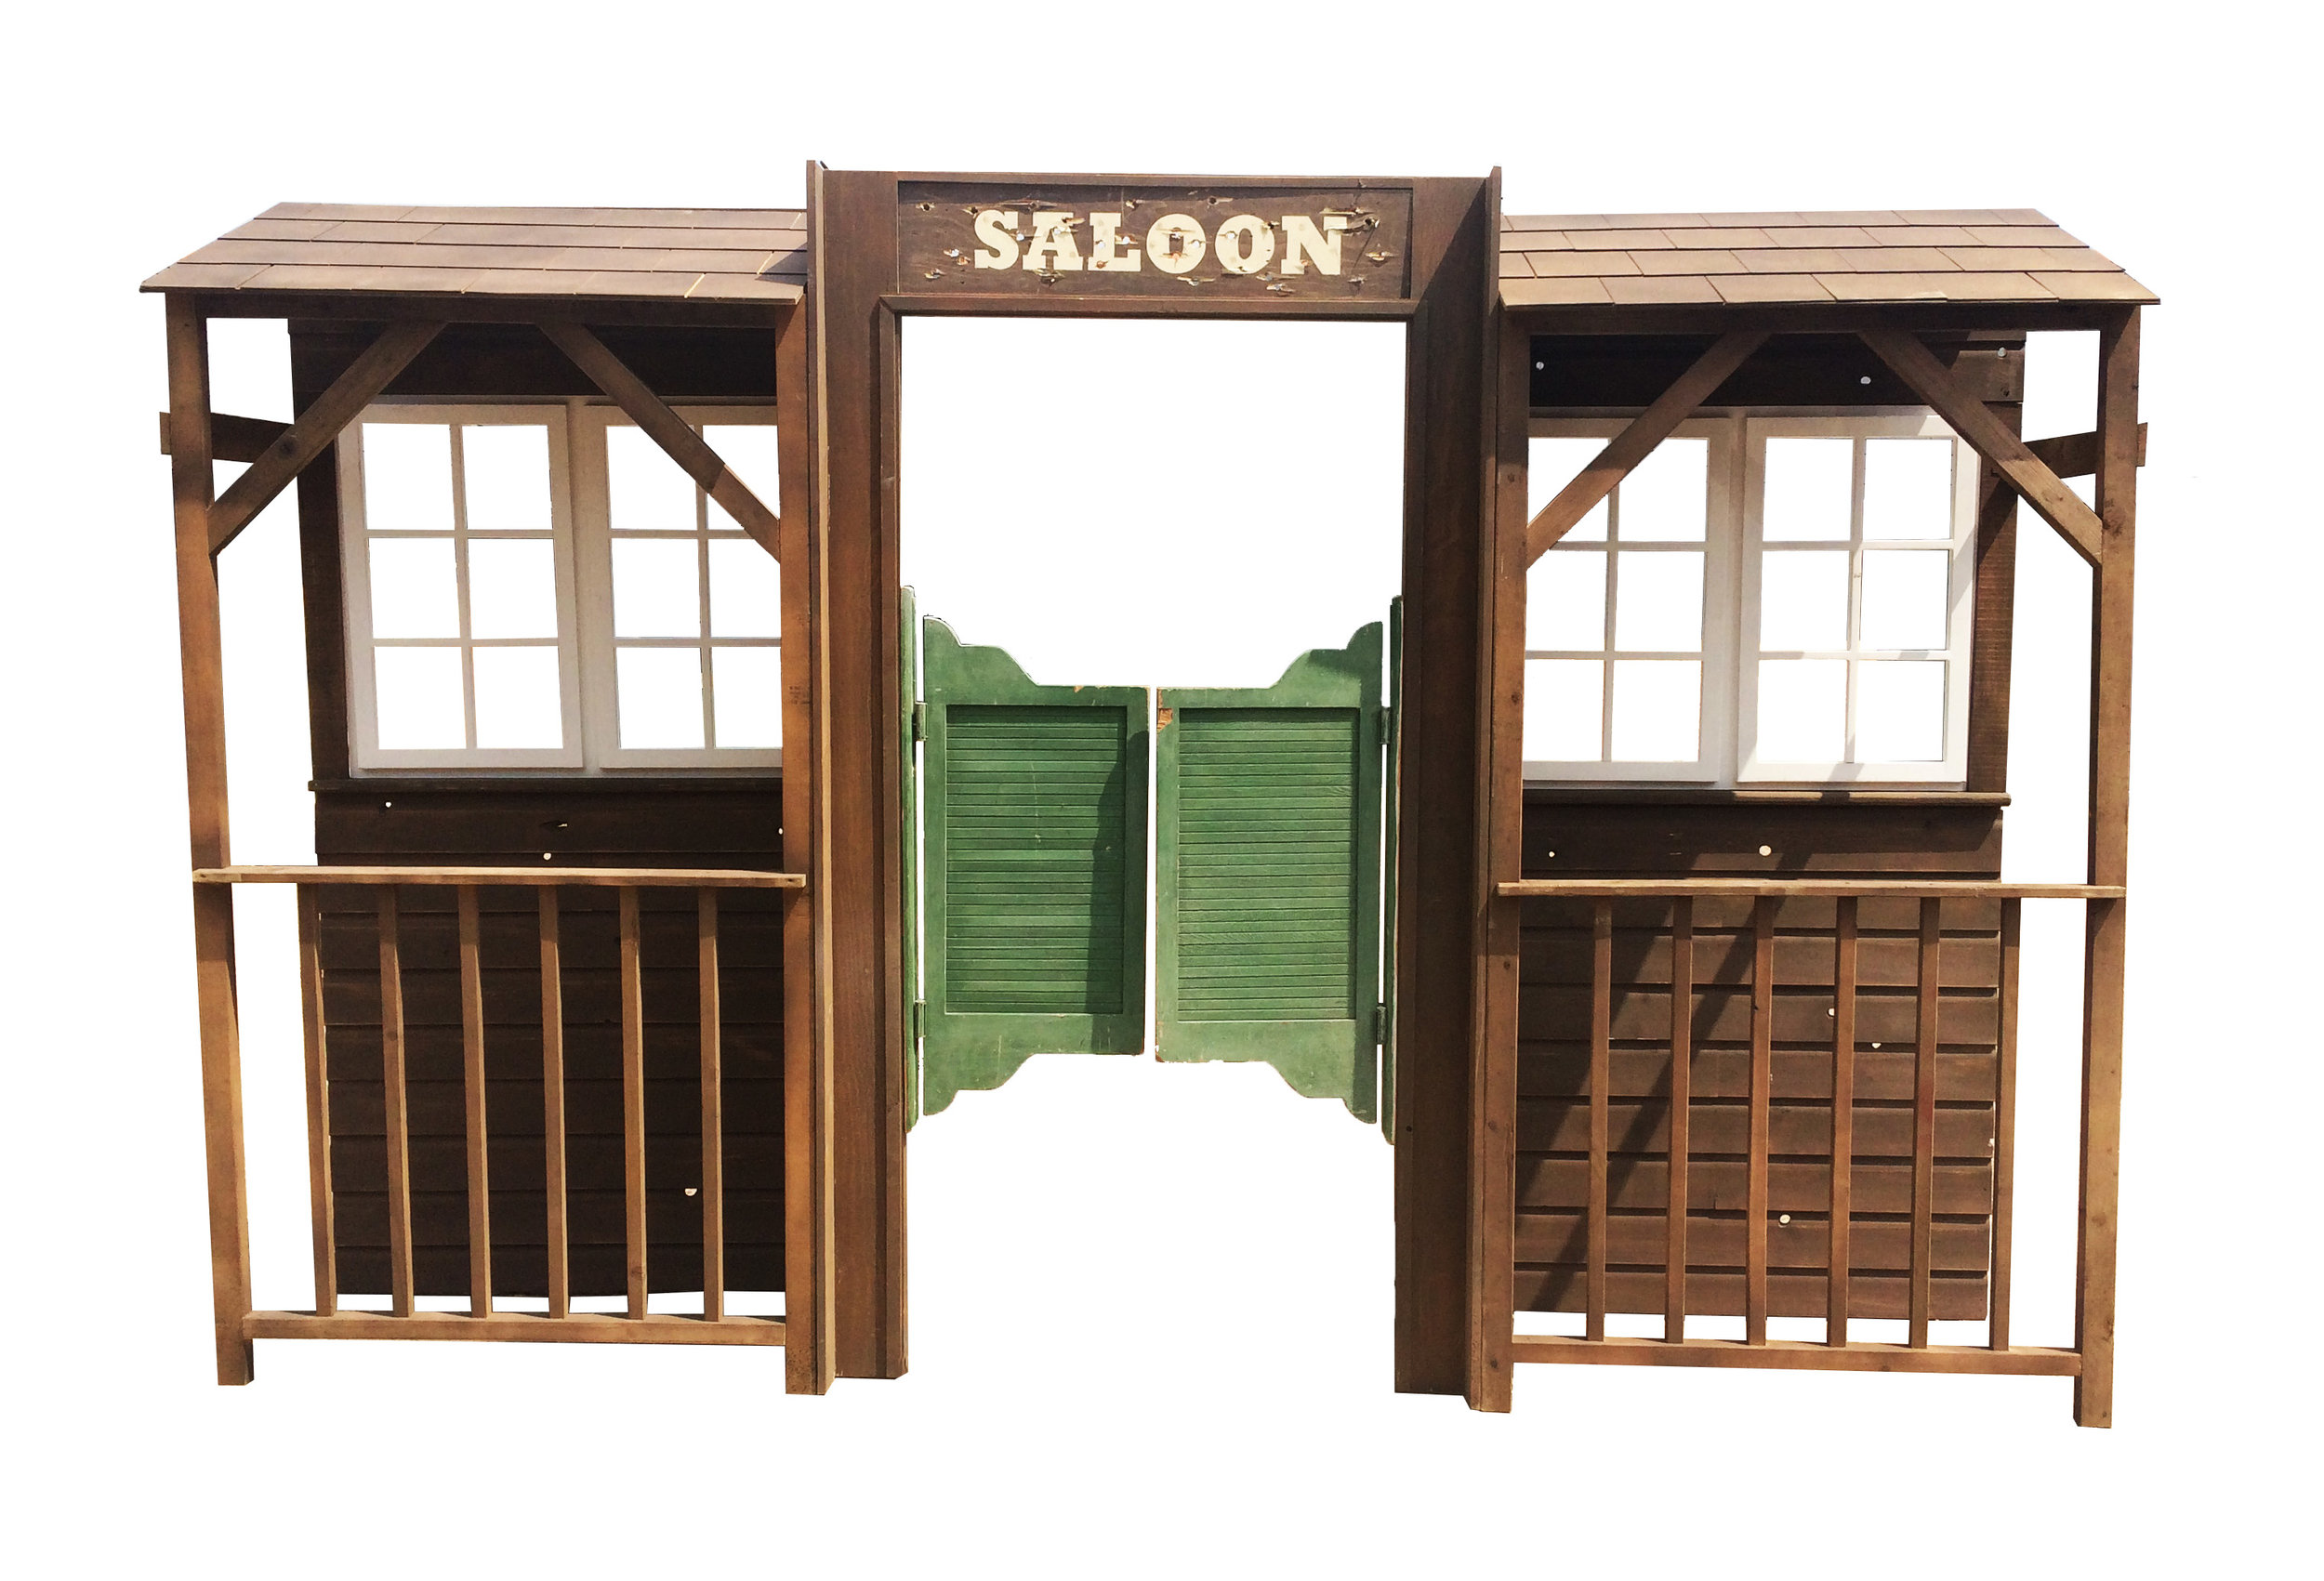 Saloon Frontage using Saloon Doors above  2.44m High - 3.7m Wide - 0.6m Deep